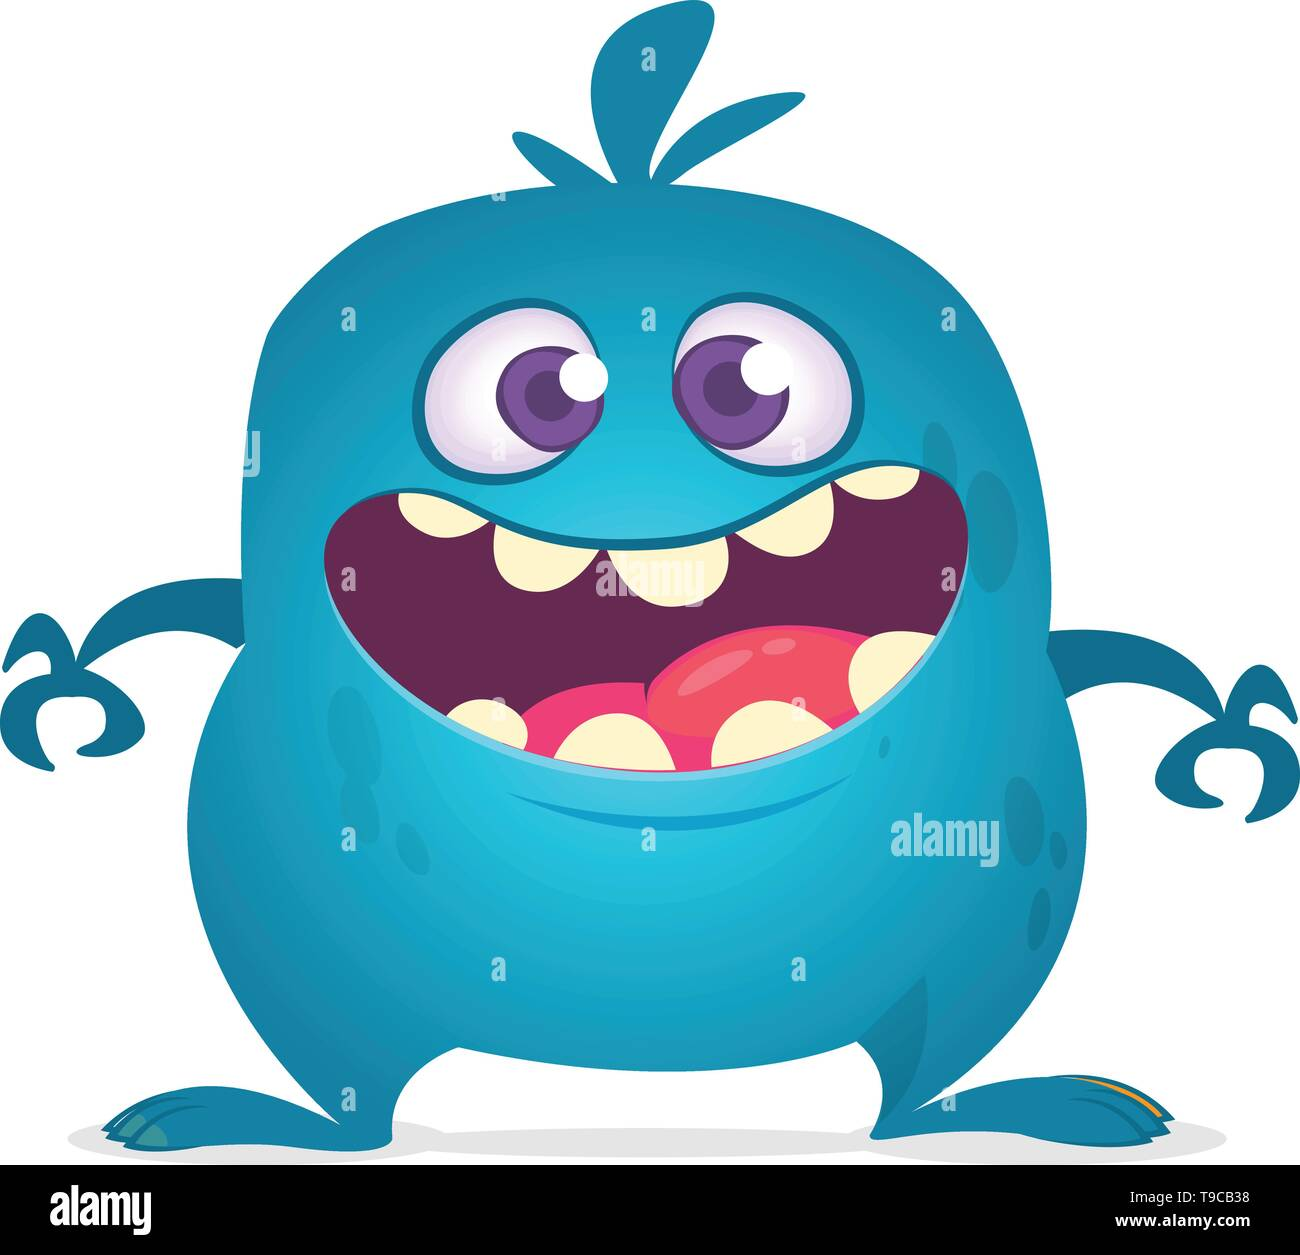 Happy cartoon monster laughing. Vector blue monster illustration. Halloween design - Stock Image